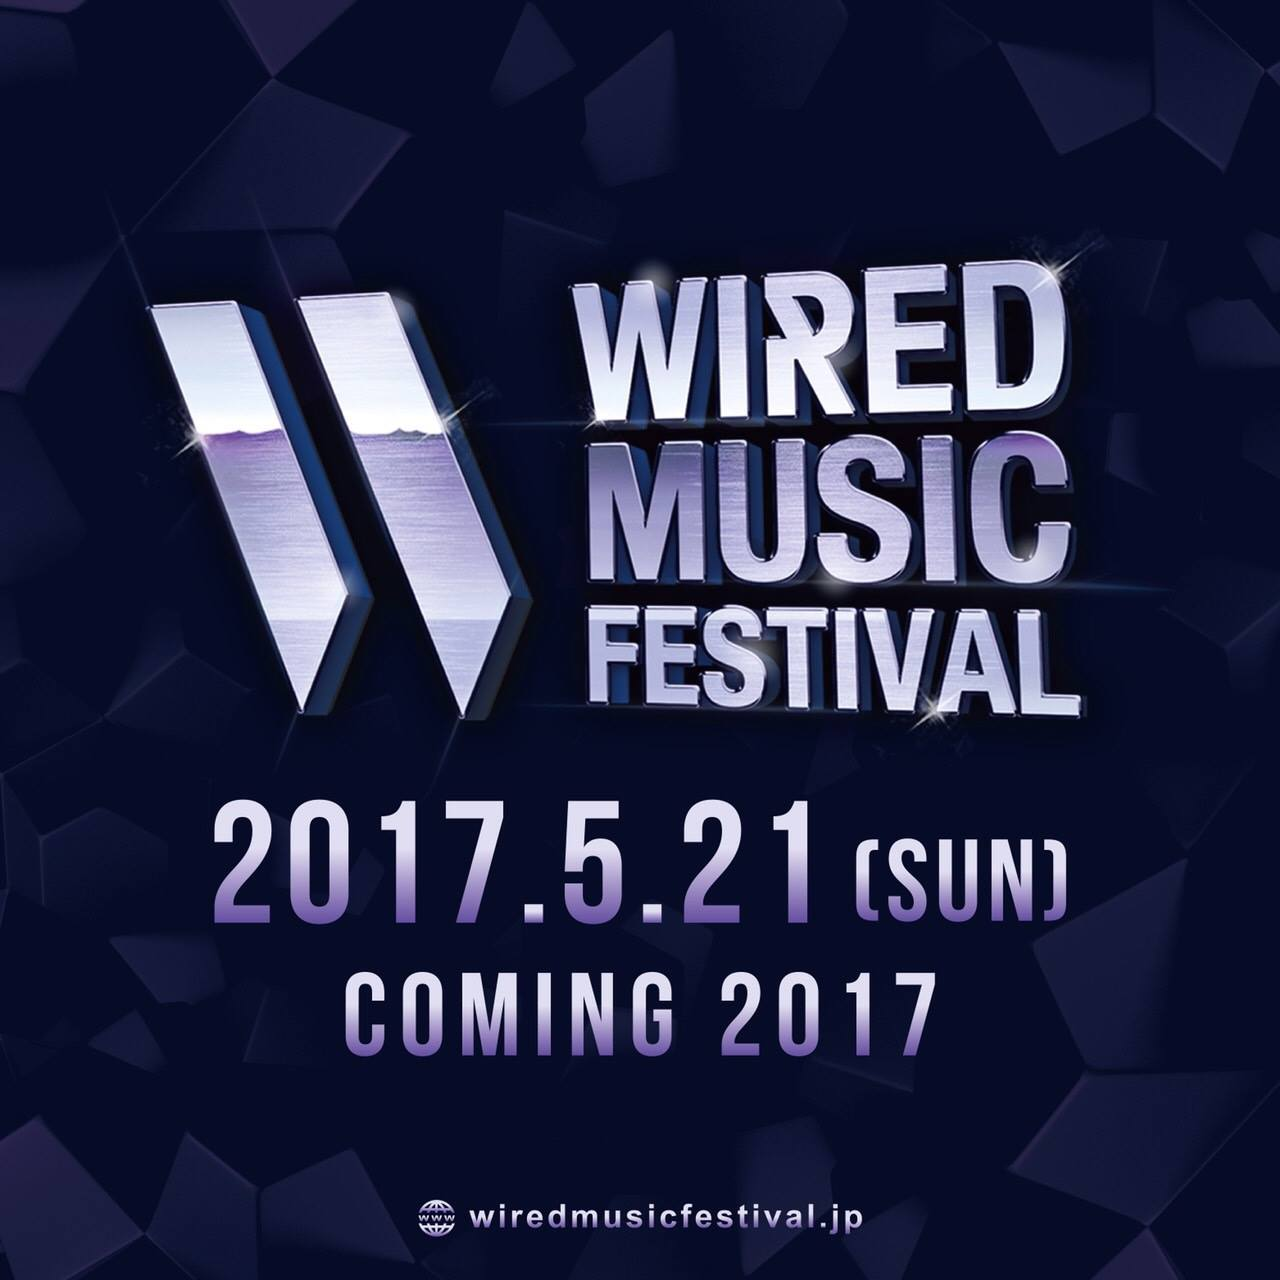 wired-music-festival-2017